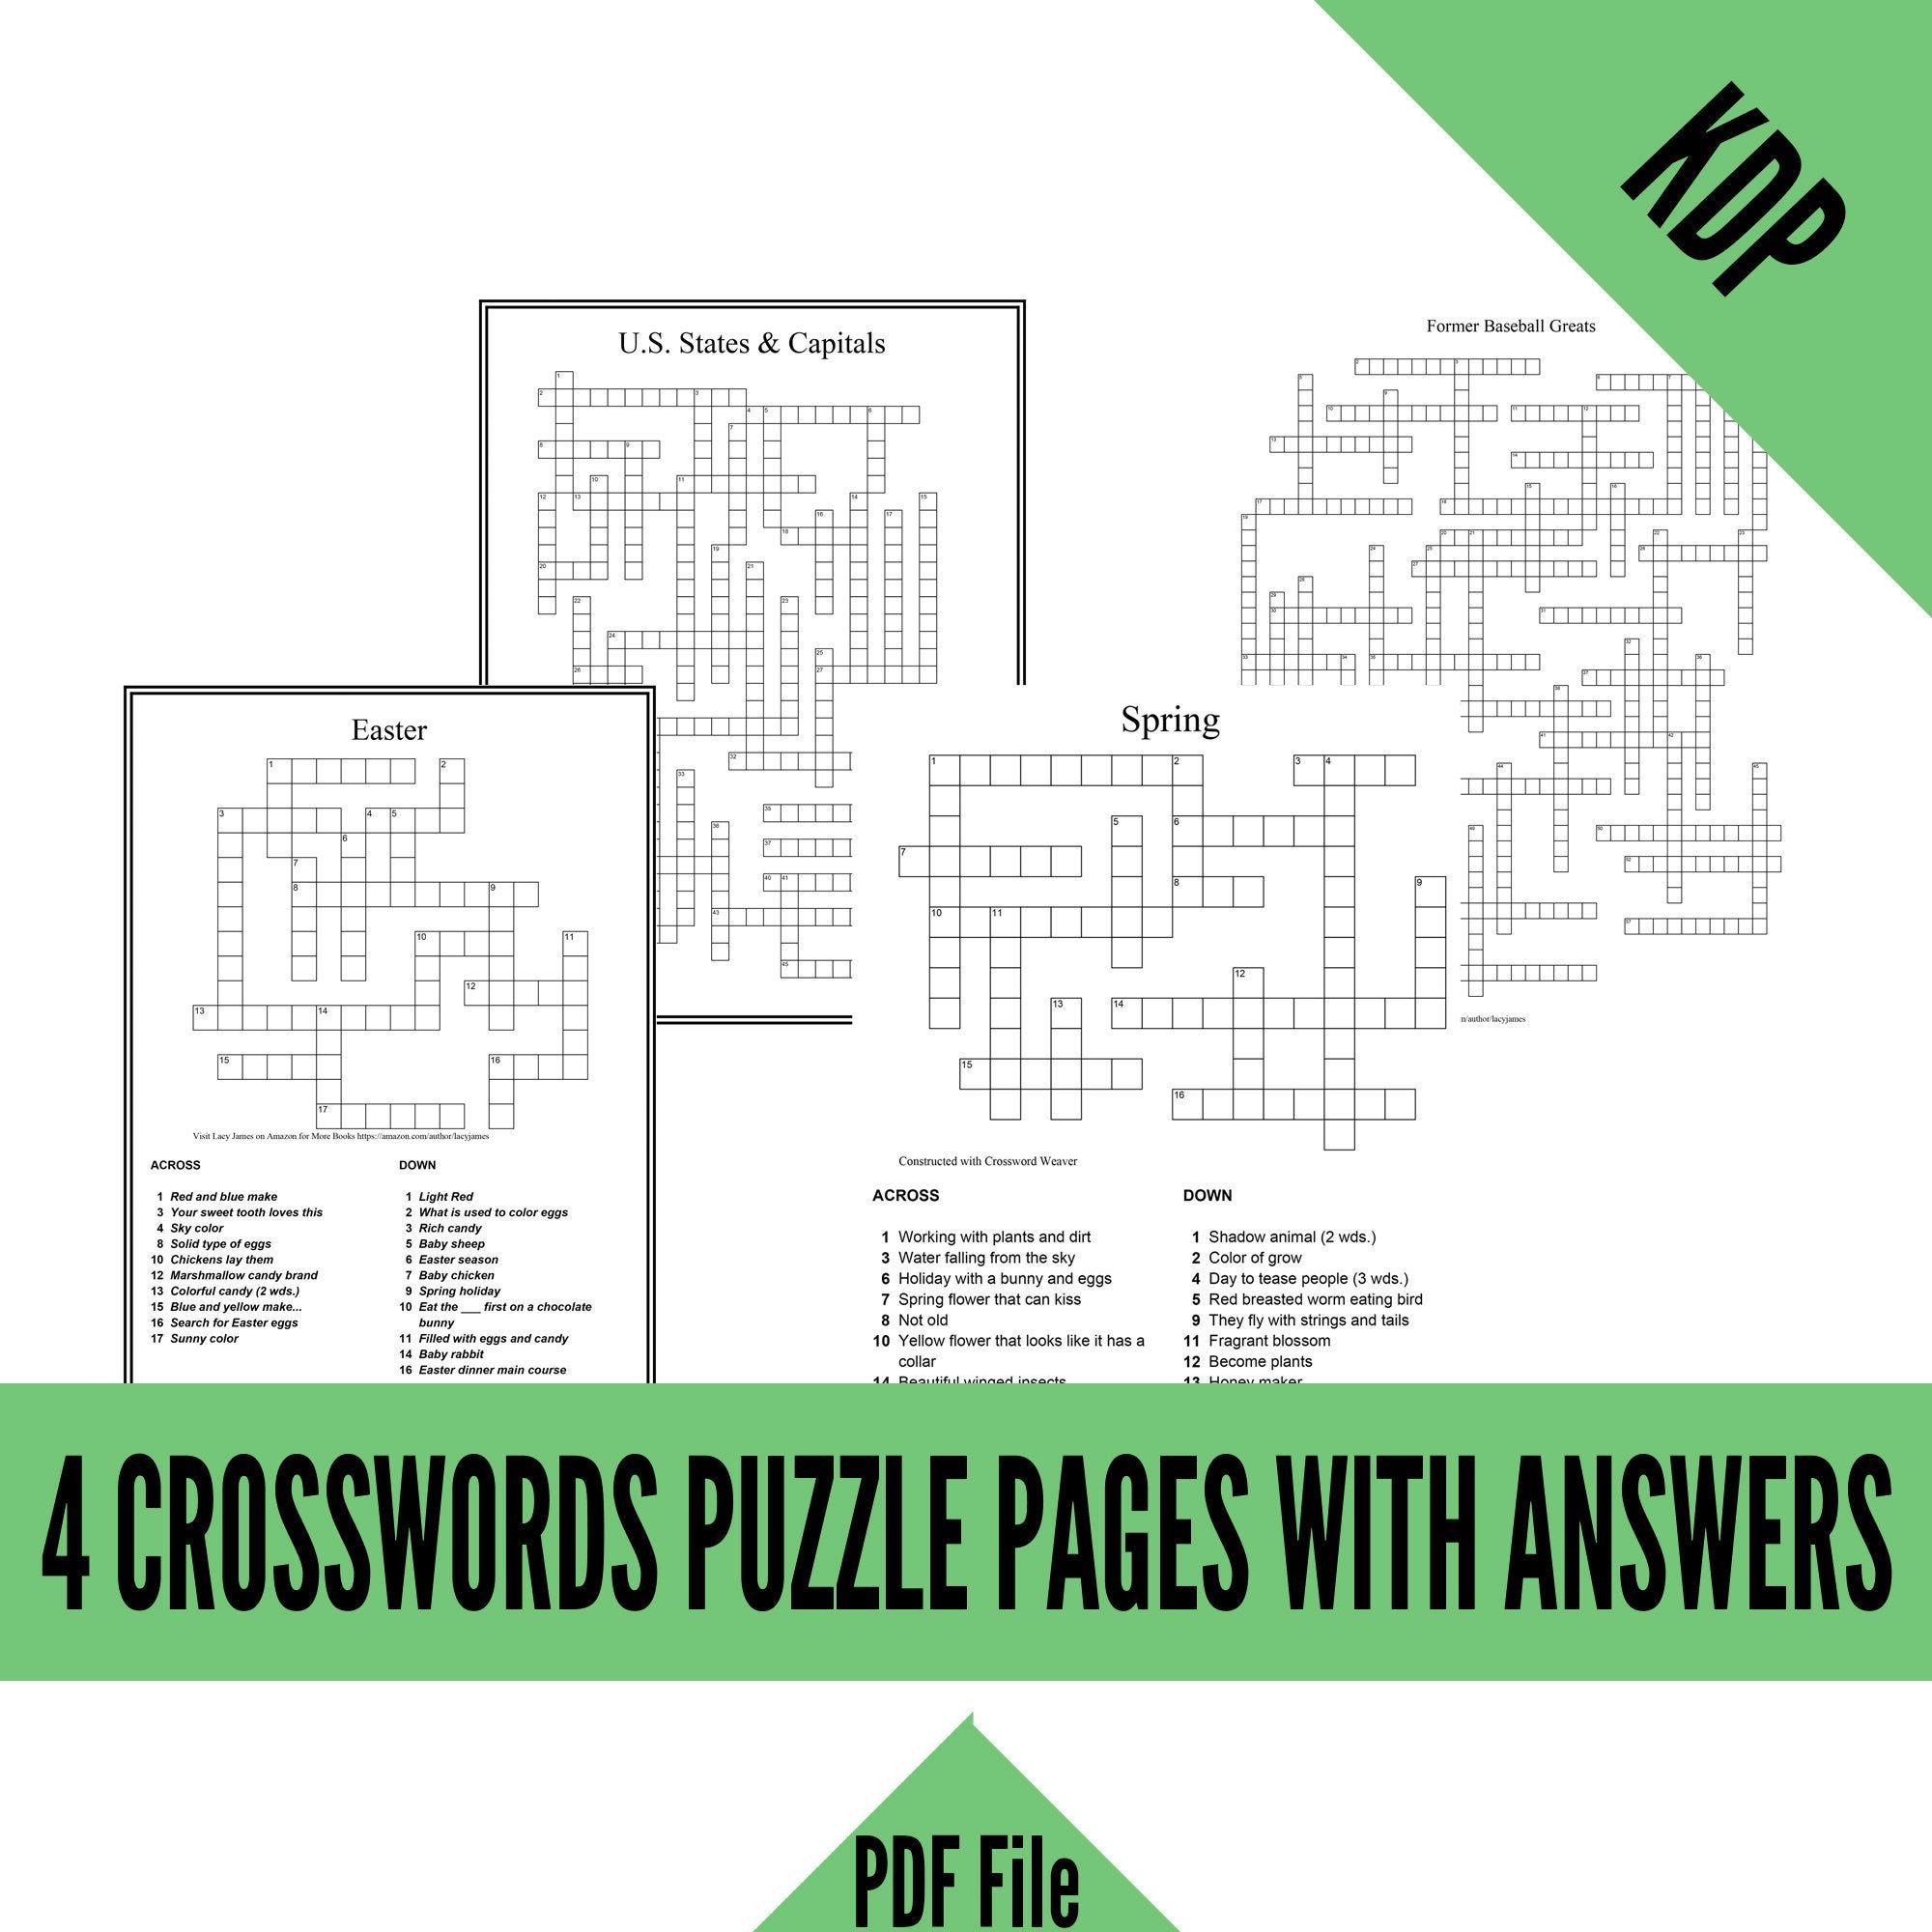 Kdp 4 Crossword Puzzles With Clues And Answers In Pdf Format For Creating Kdp Activity Books Spring Easter Baseball Greats State Capitals In 2020 Book Activities Design Puzzle Crossword Puzzles